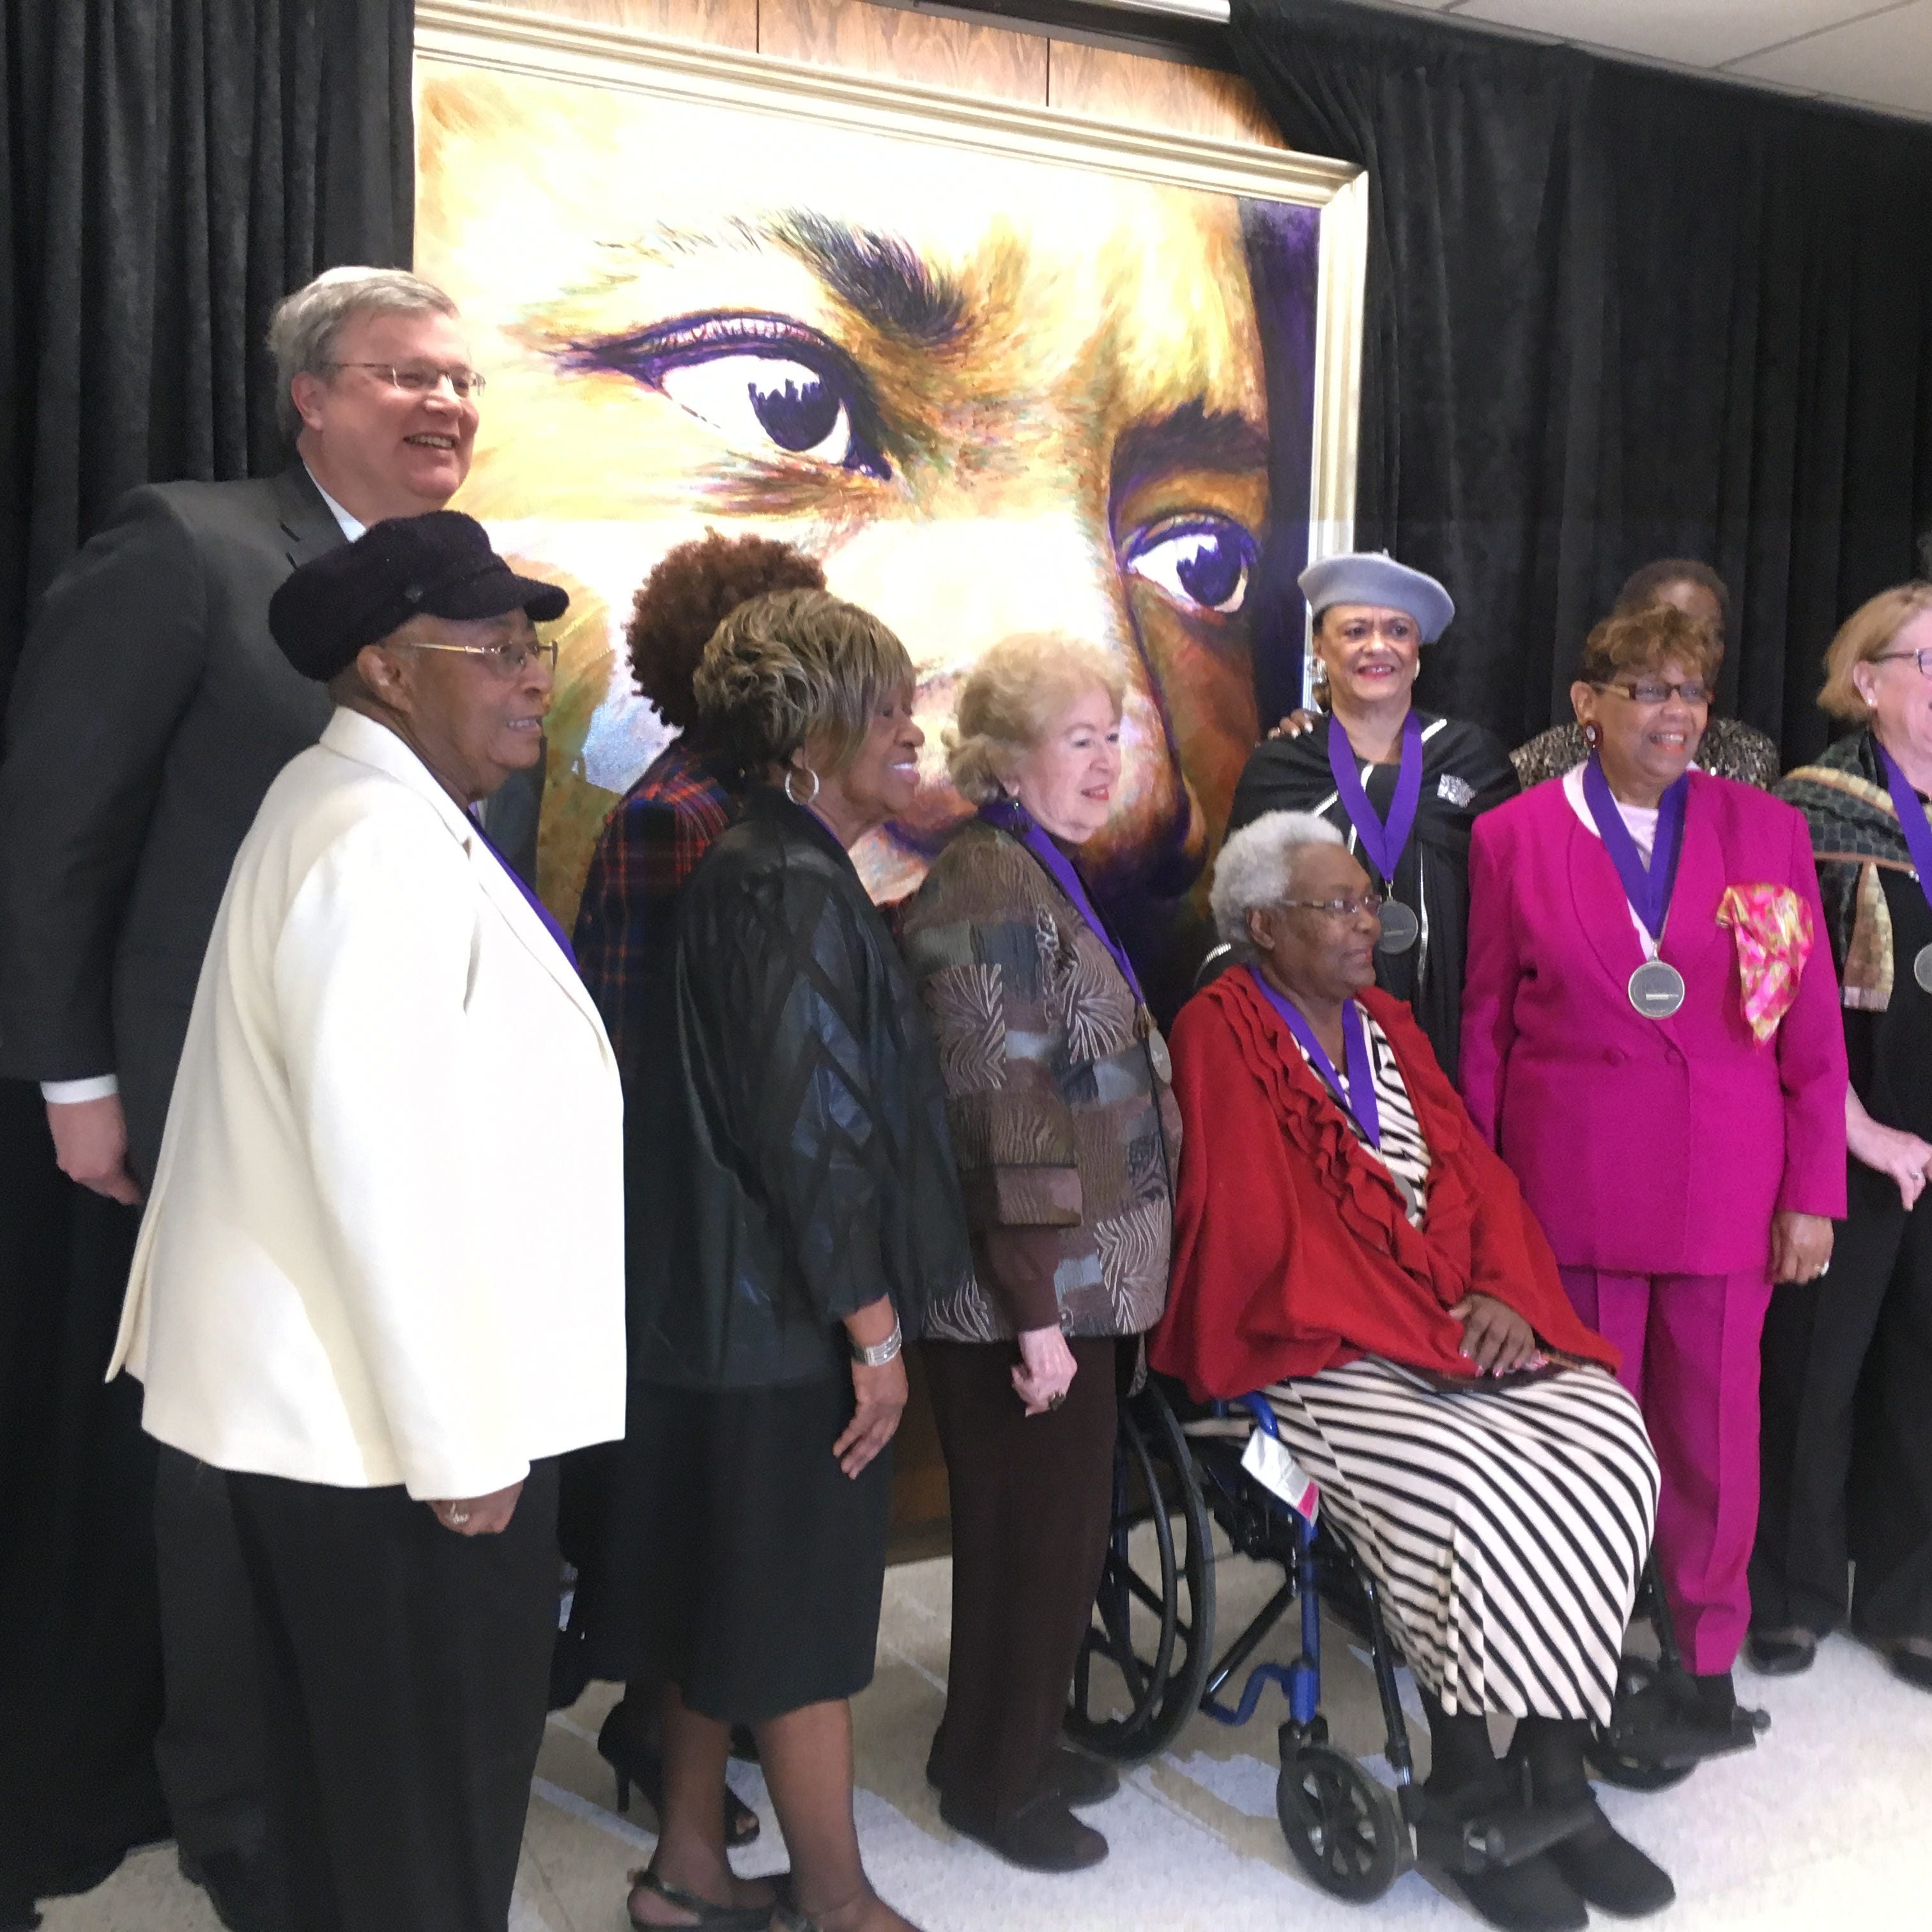 MLK Day in Memphis: 10 women honored at city hall, new King portrait unveiled, museum hosts fair